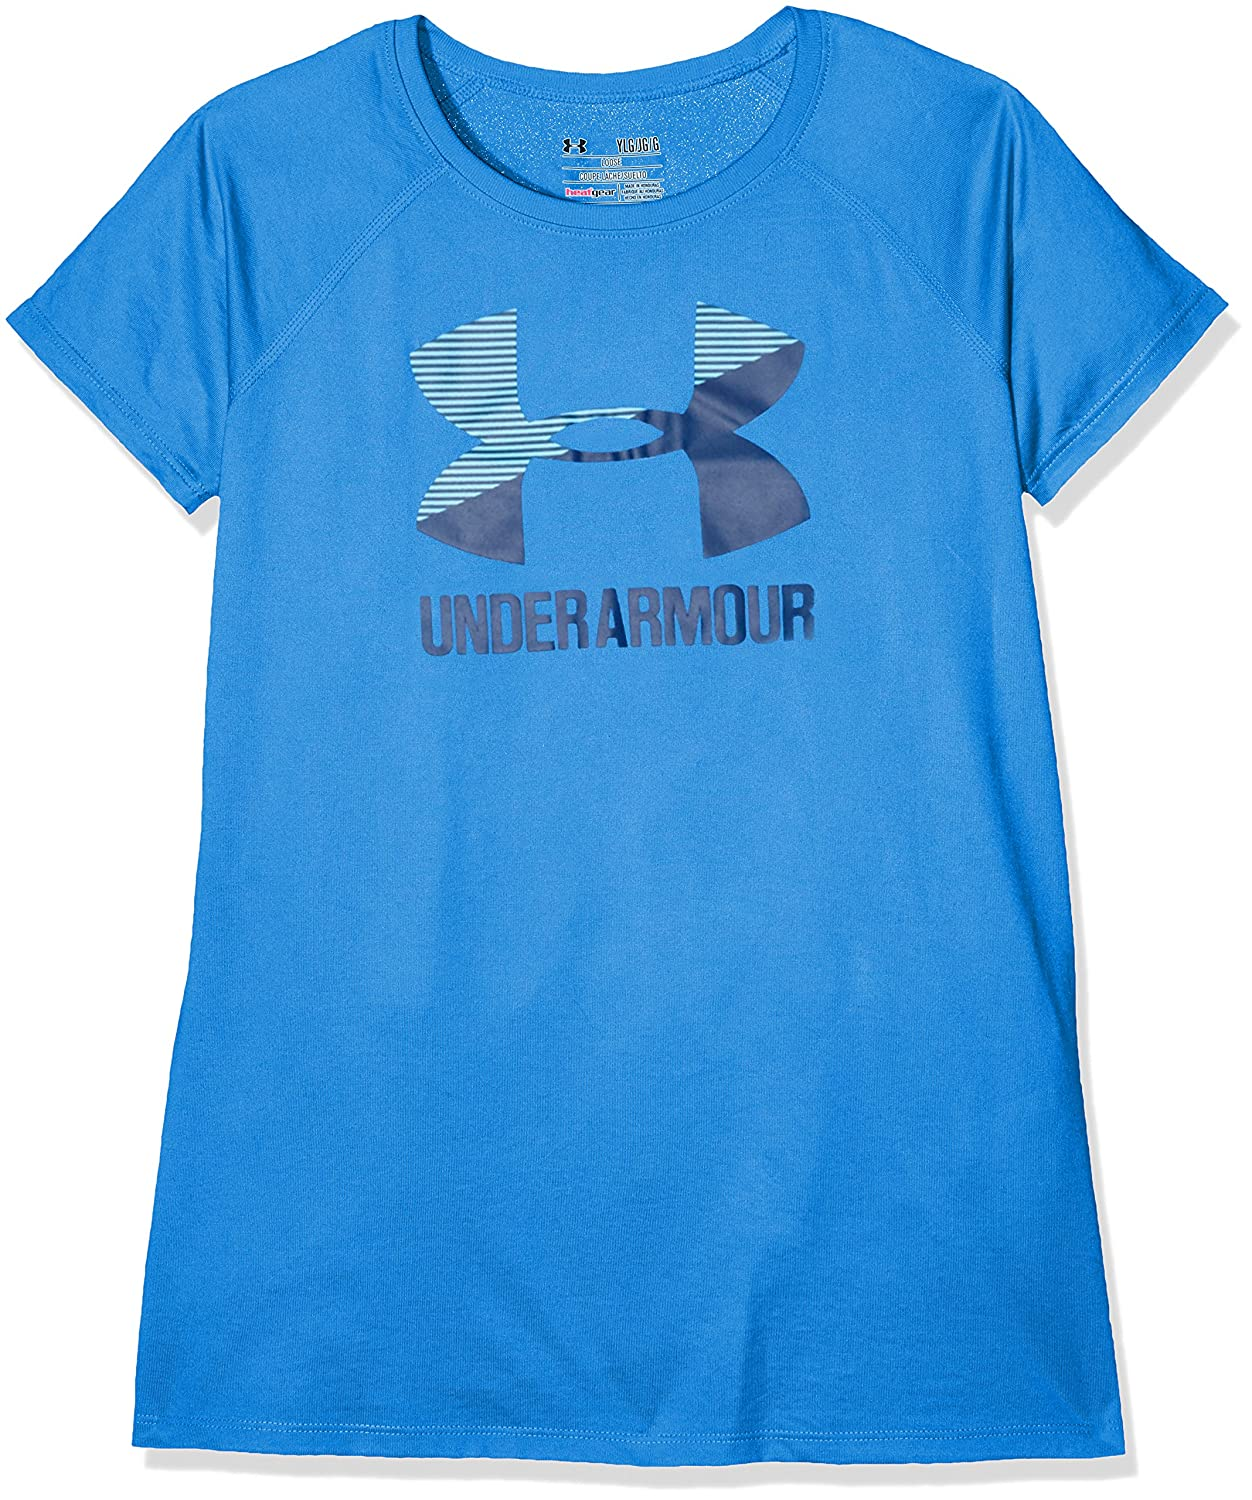 62bb90b8 Amazon.com: Under Armour Girls Solid Big Logo Short Sleeve T-Shirt: Under  Armour: Clothing